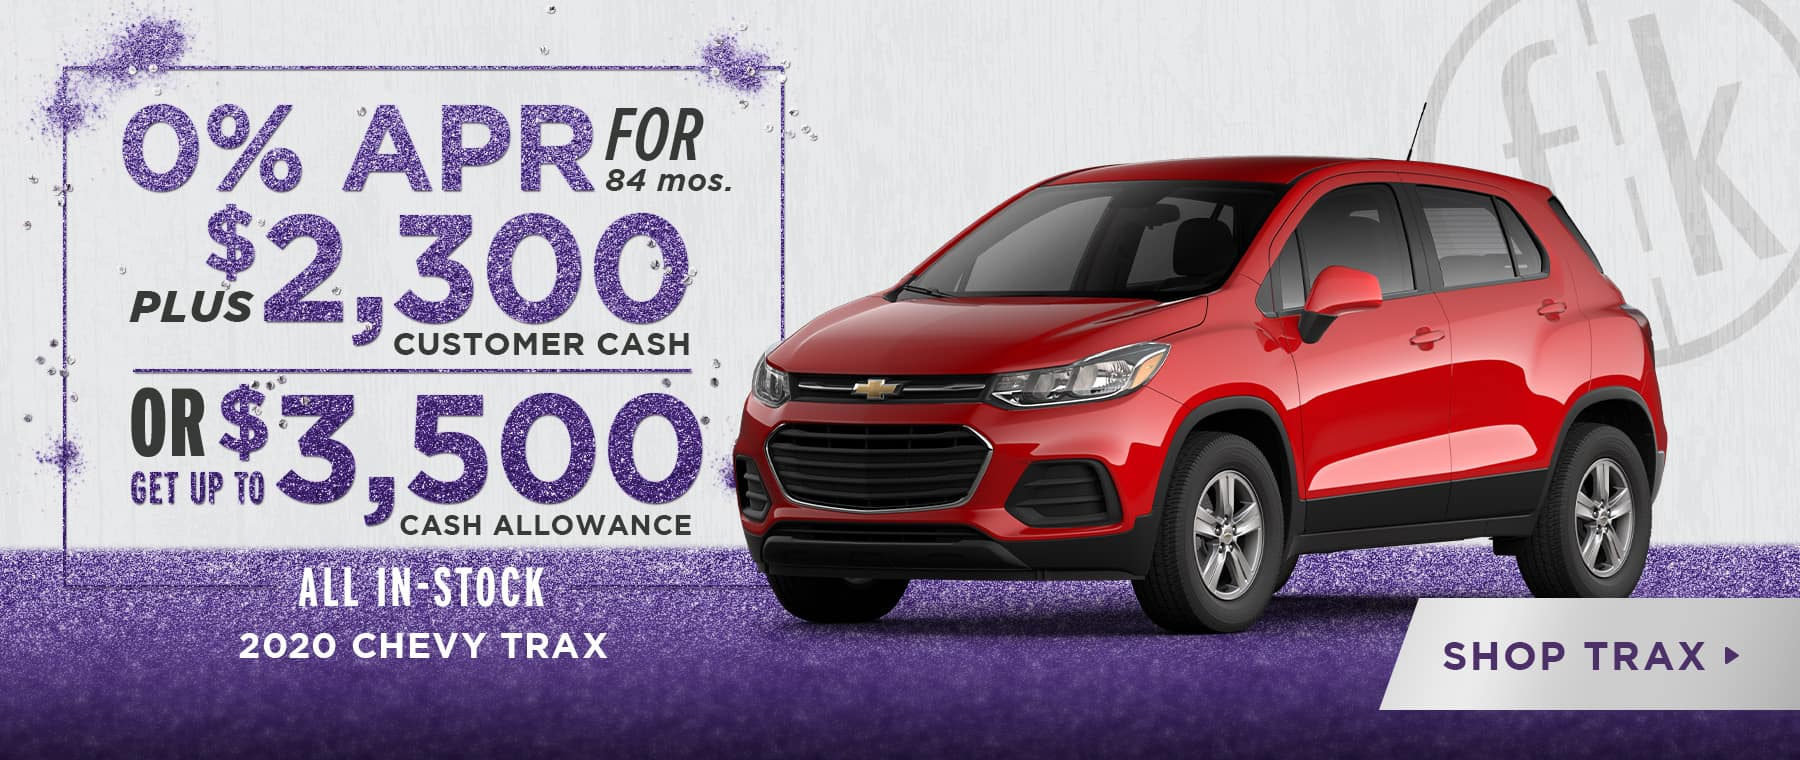 0% for 84 mos. PLUS $2,300 Customer Cash OR Get Up To $3,500 Cash Allowance 2020 Trax